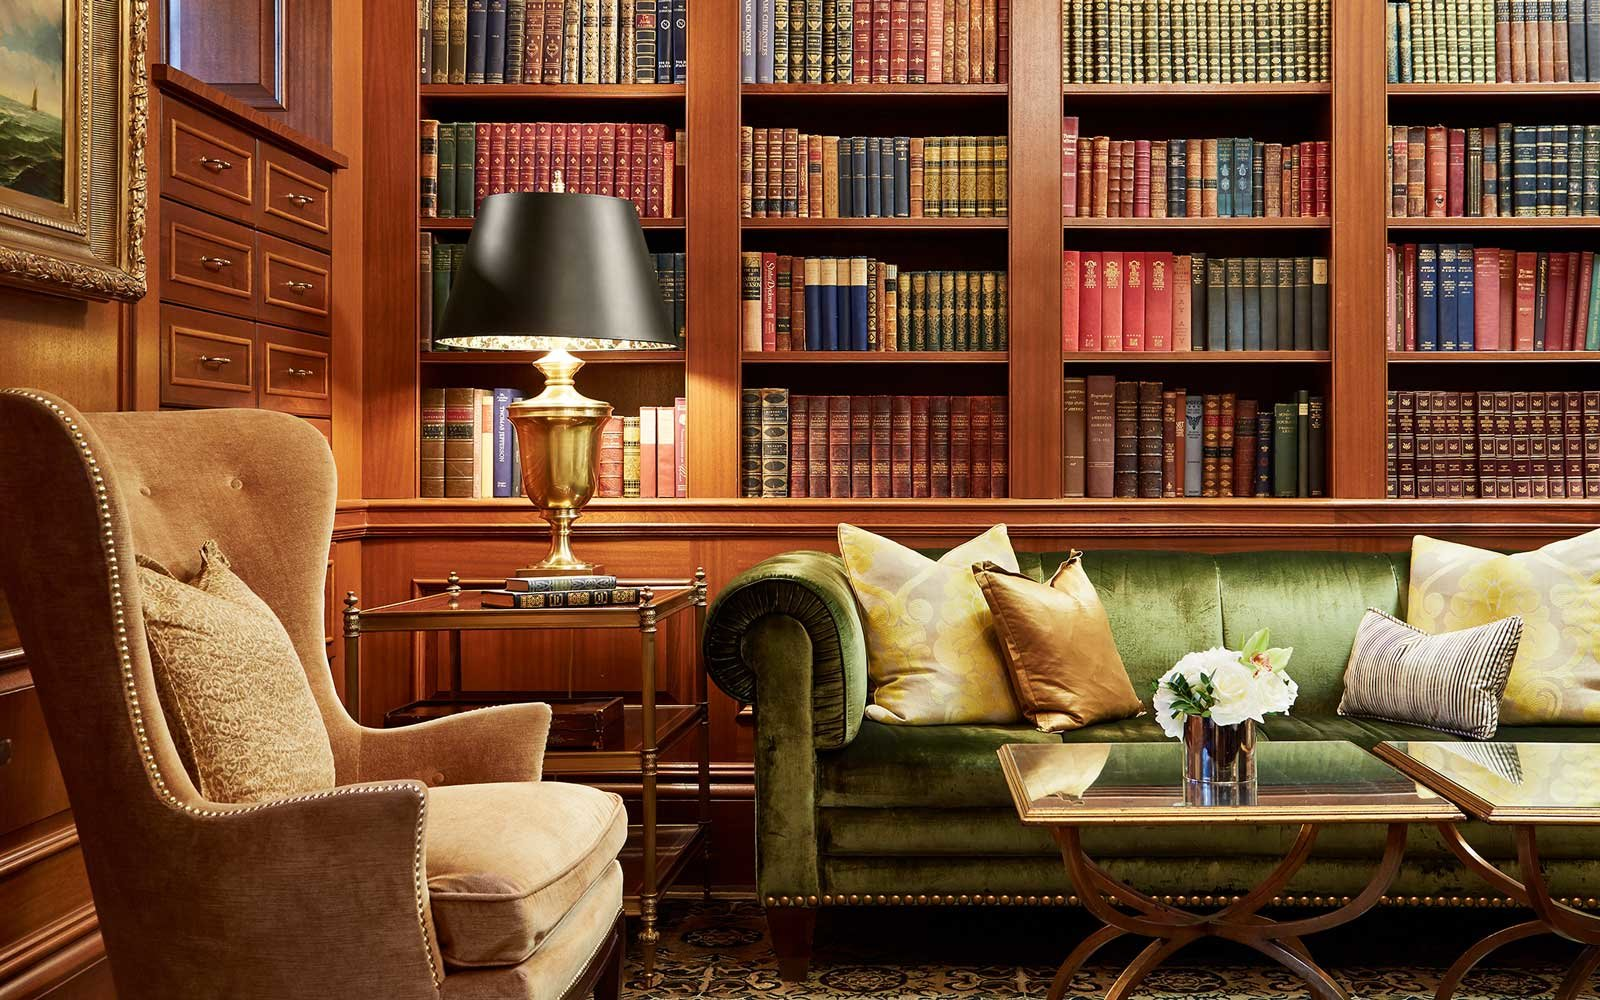 Book Room at The Jefferson Hotel